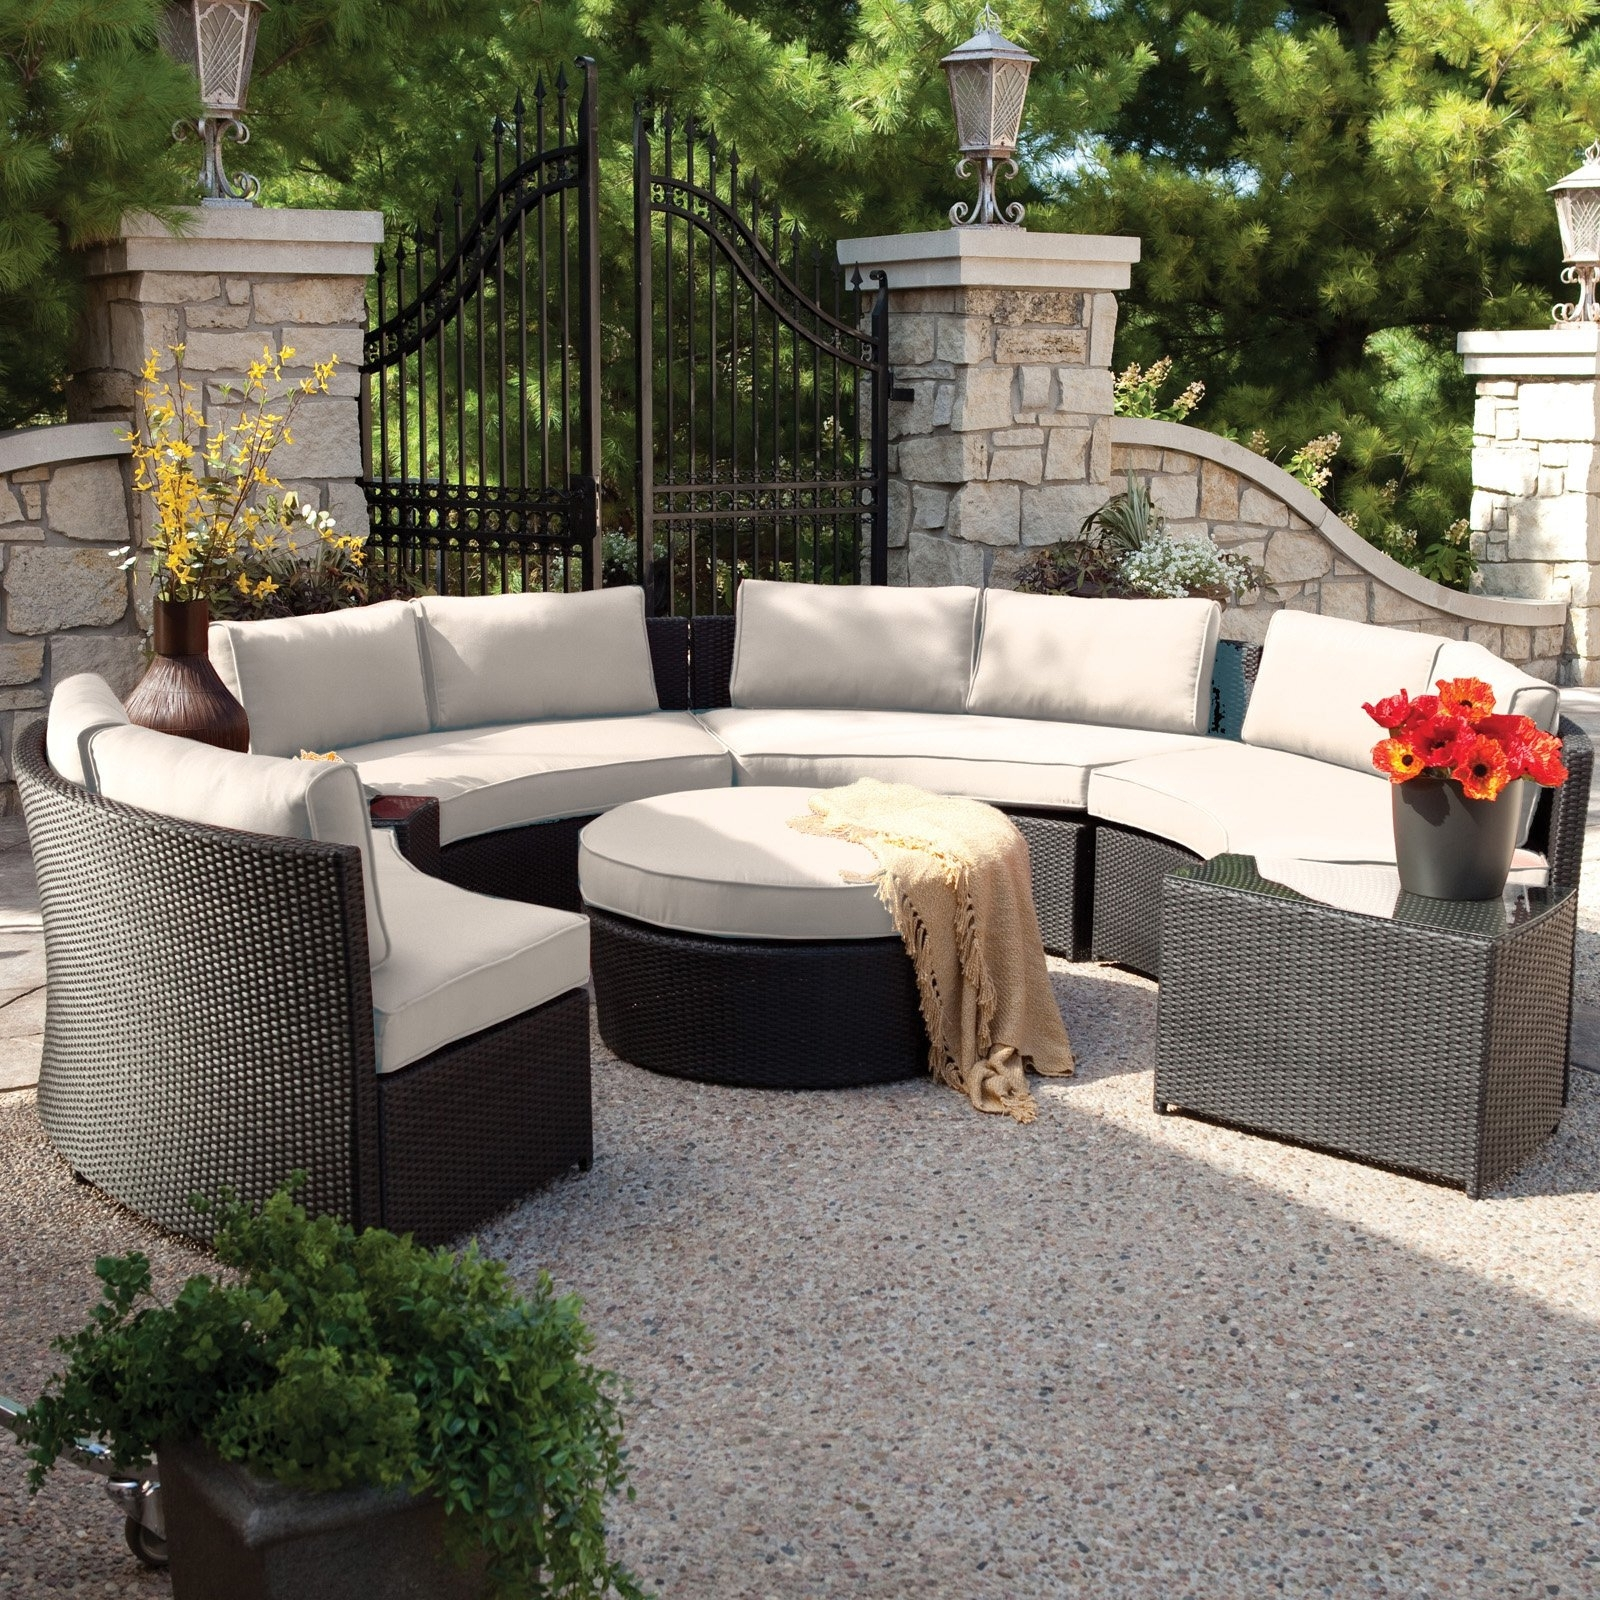 Well Known Belham Living Meridian Round Outdoor Wicker Patio Furniture Set With Sunbrella Cushions Regarding Patio Conversation Sets With Cushions (View 18 of 20)